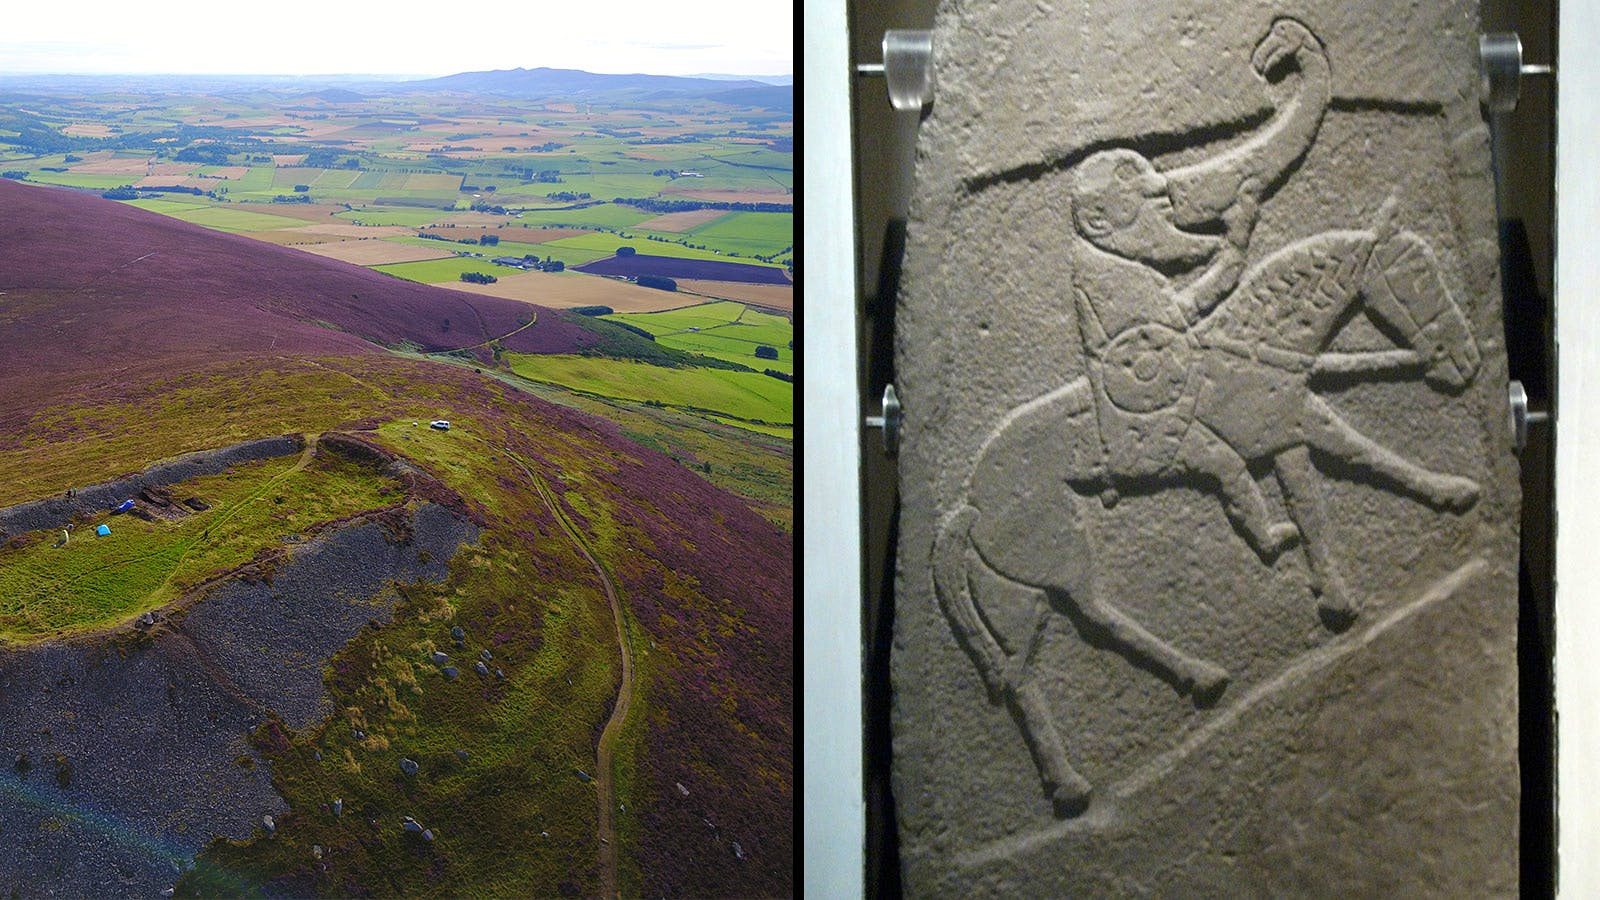 Surprising Find Suggests Medieval Scotland Actually Land of Wine-Sipping Big-City Folk